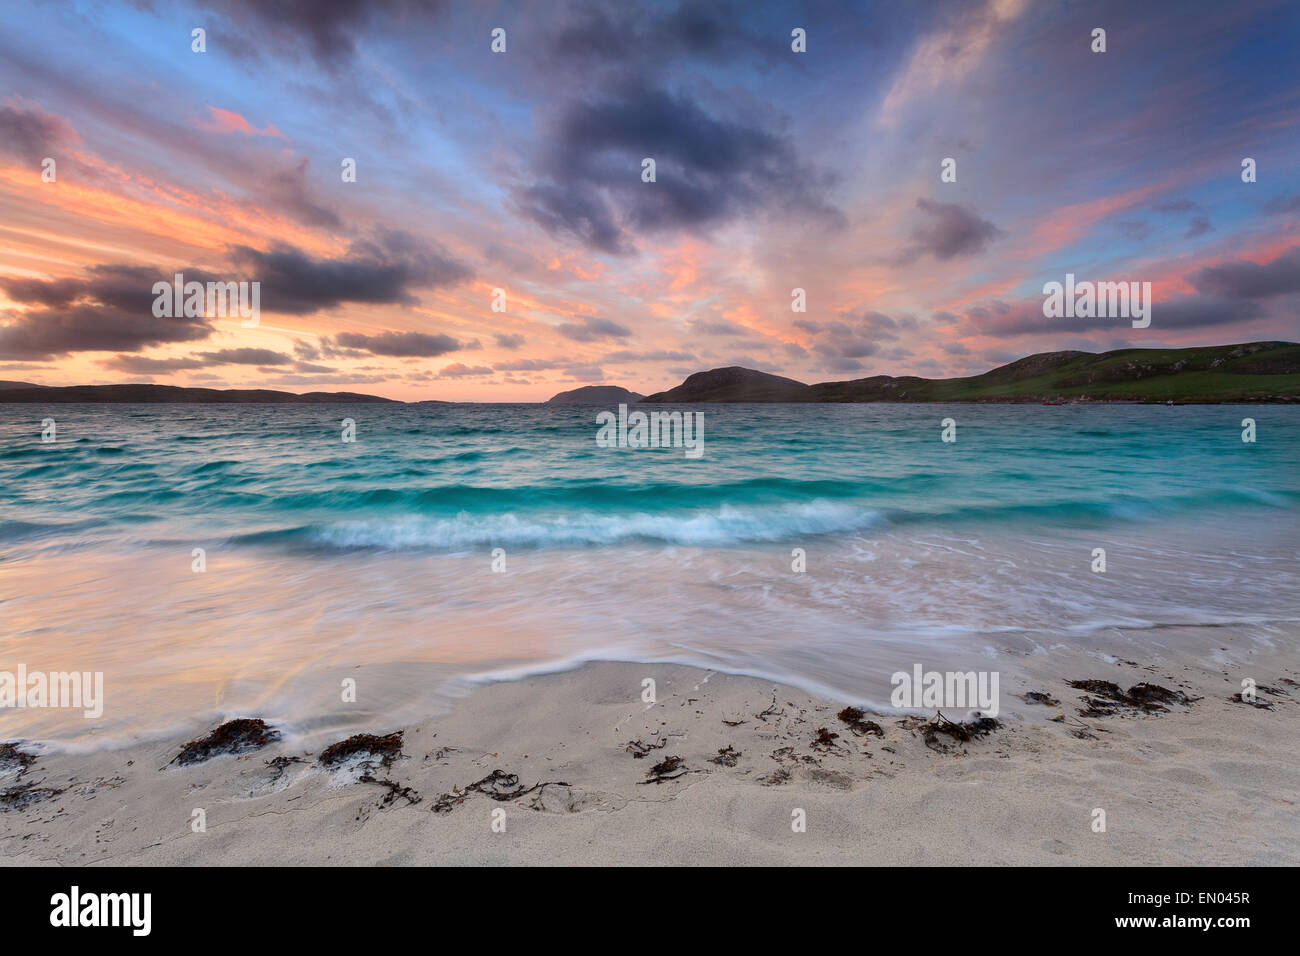 Stunning sunrise over Vatersay beach, Outer Hebrides - Stock Image